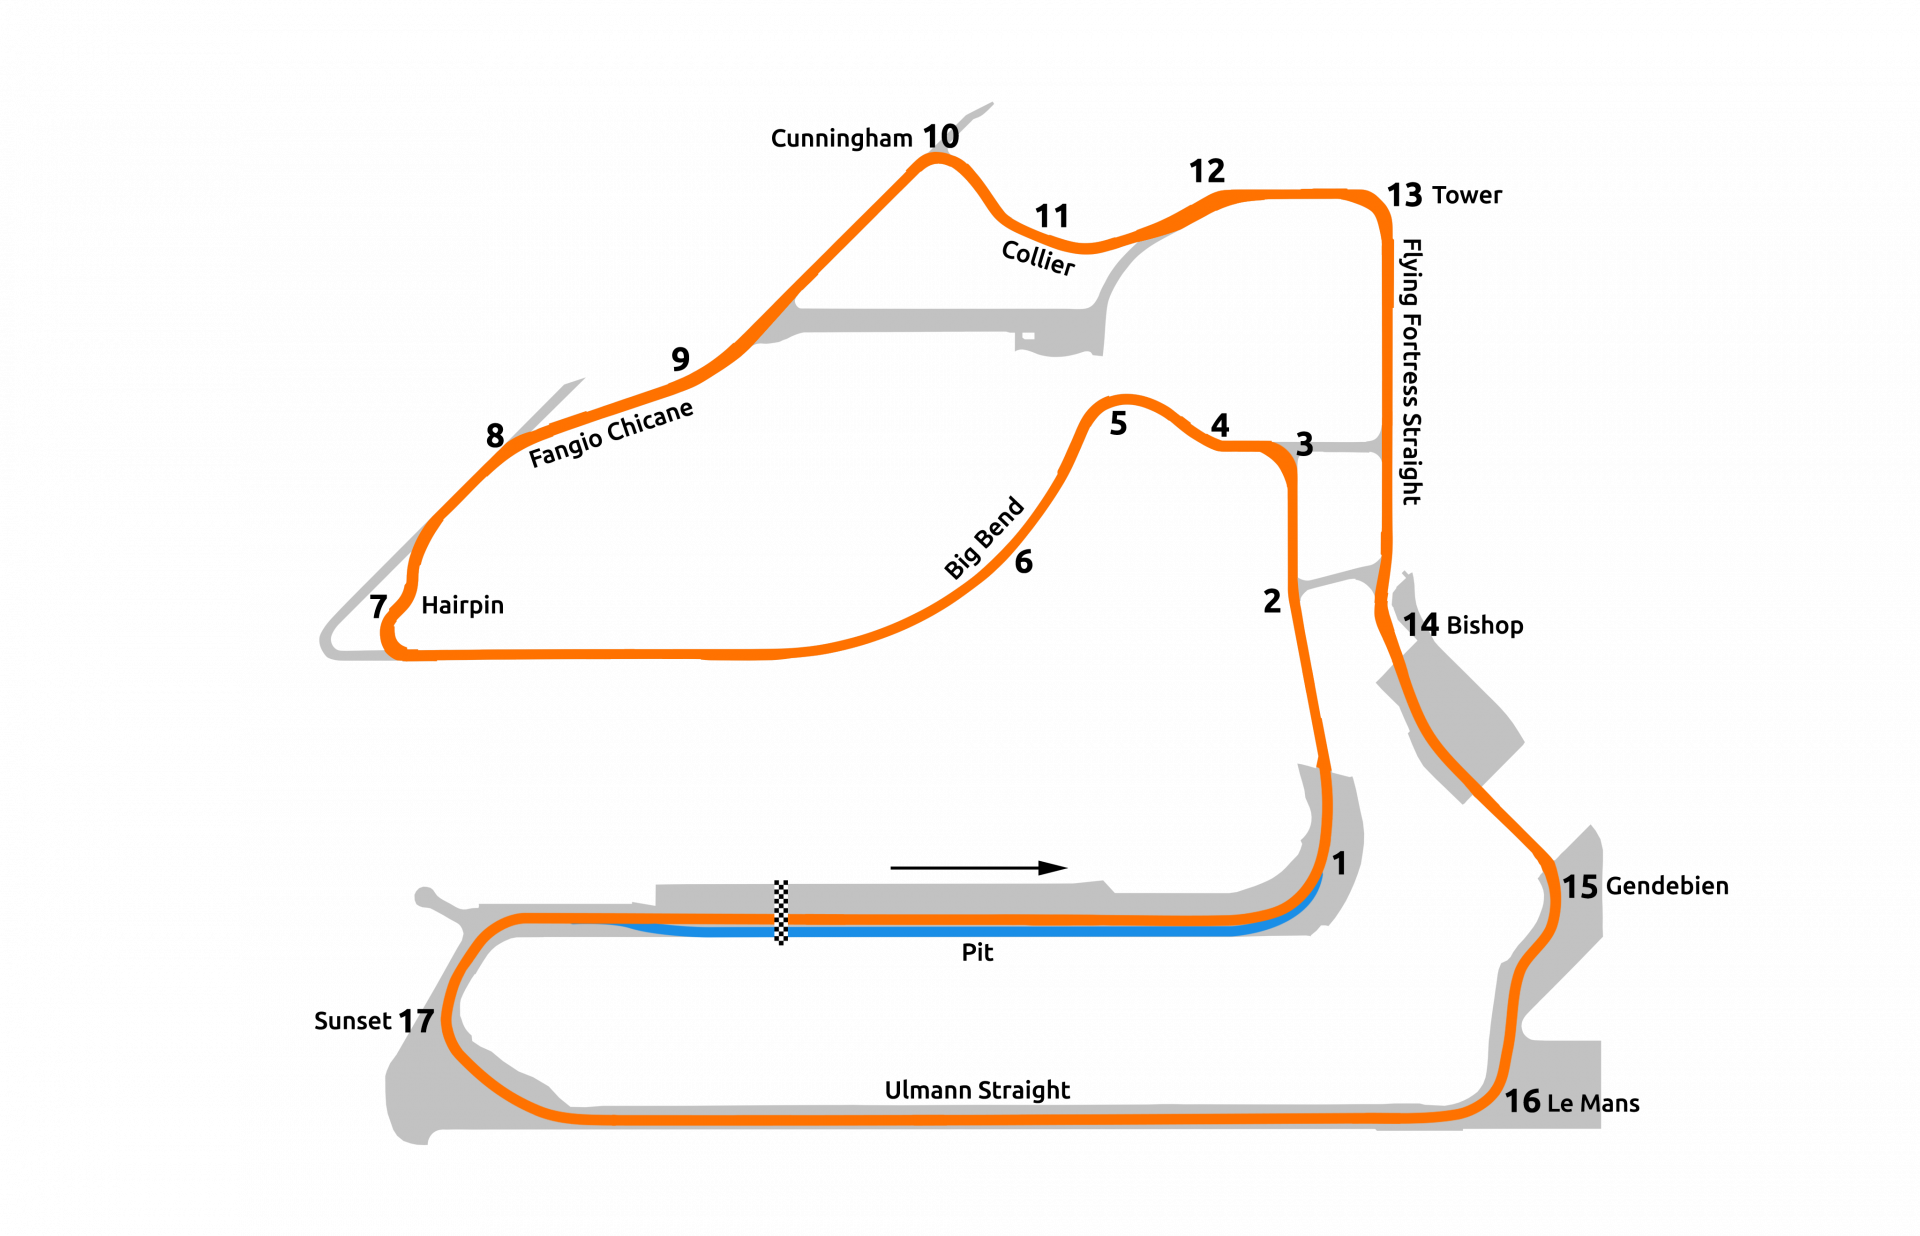 rFactor 2 July roadmap Sebring 12-hour layout